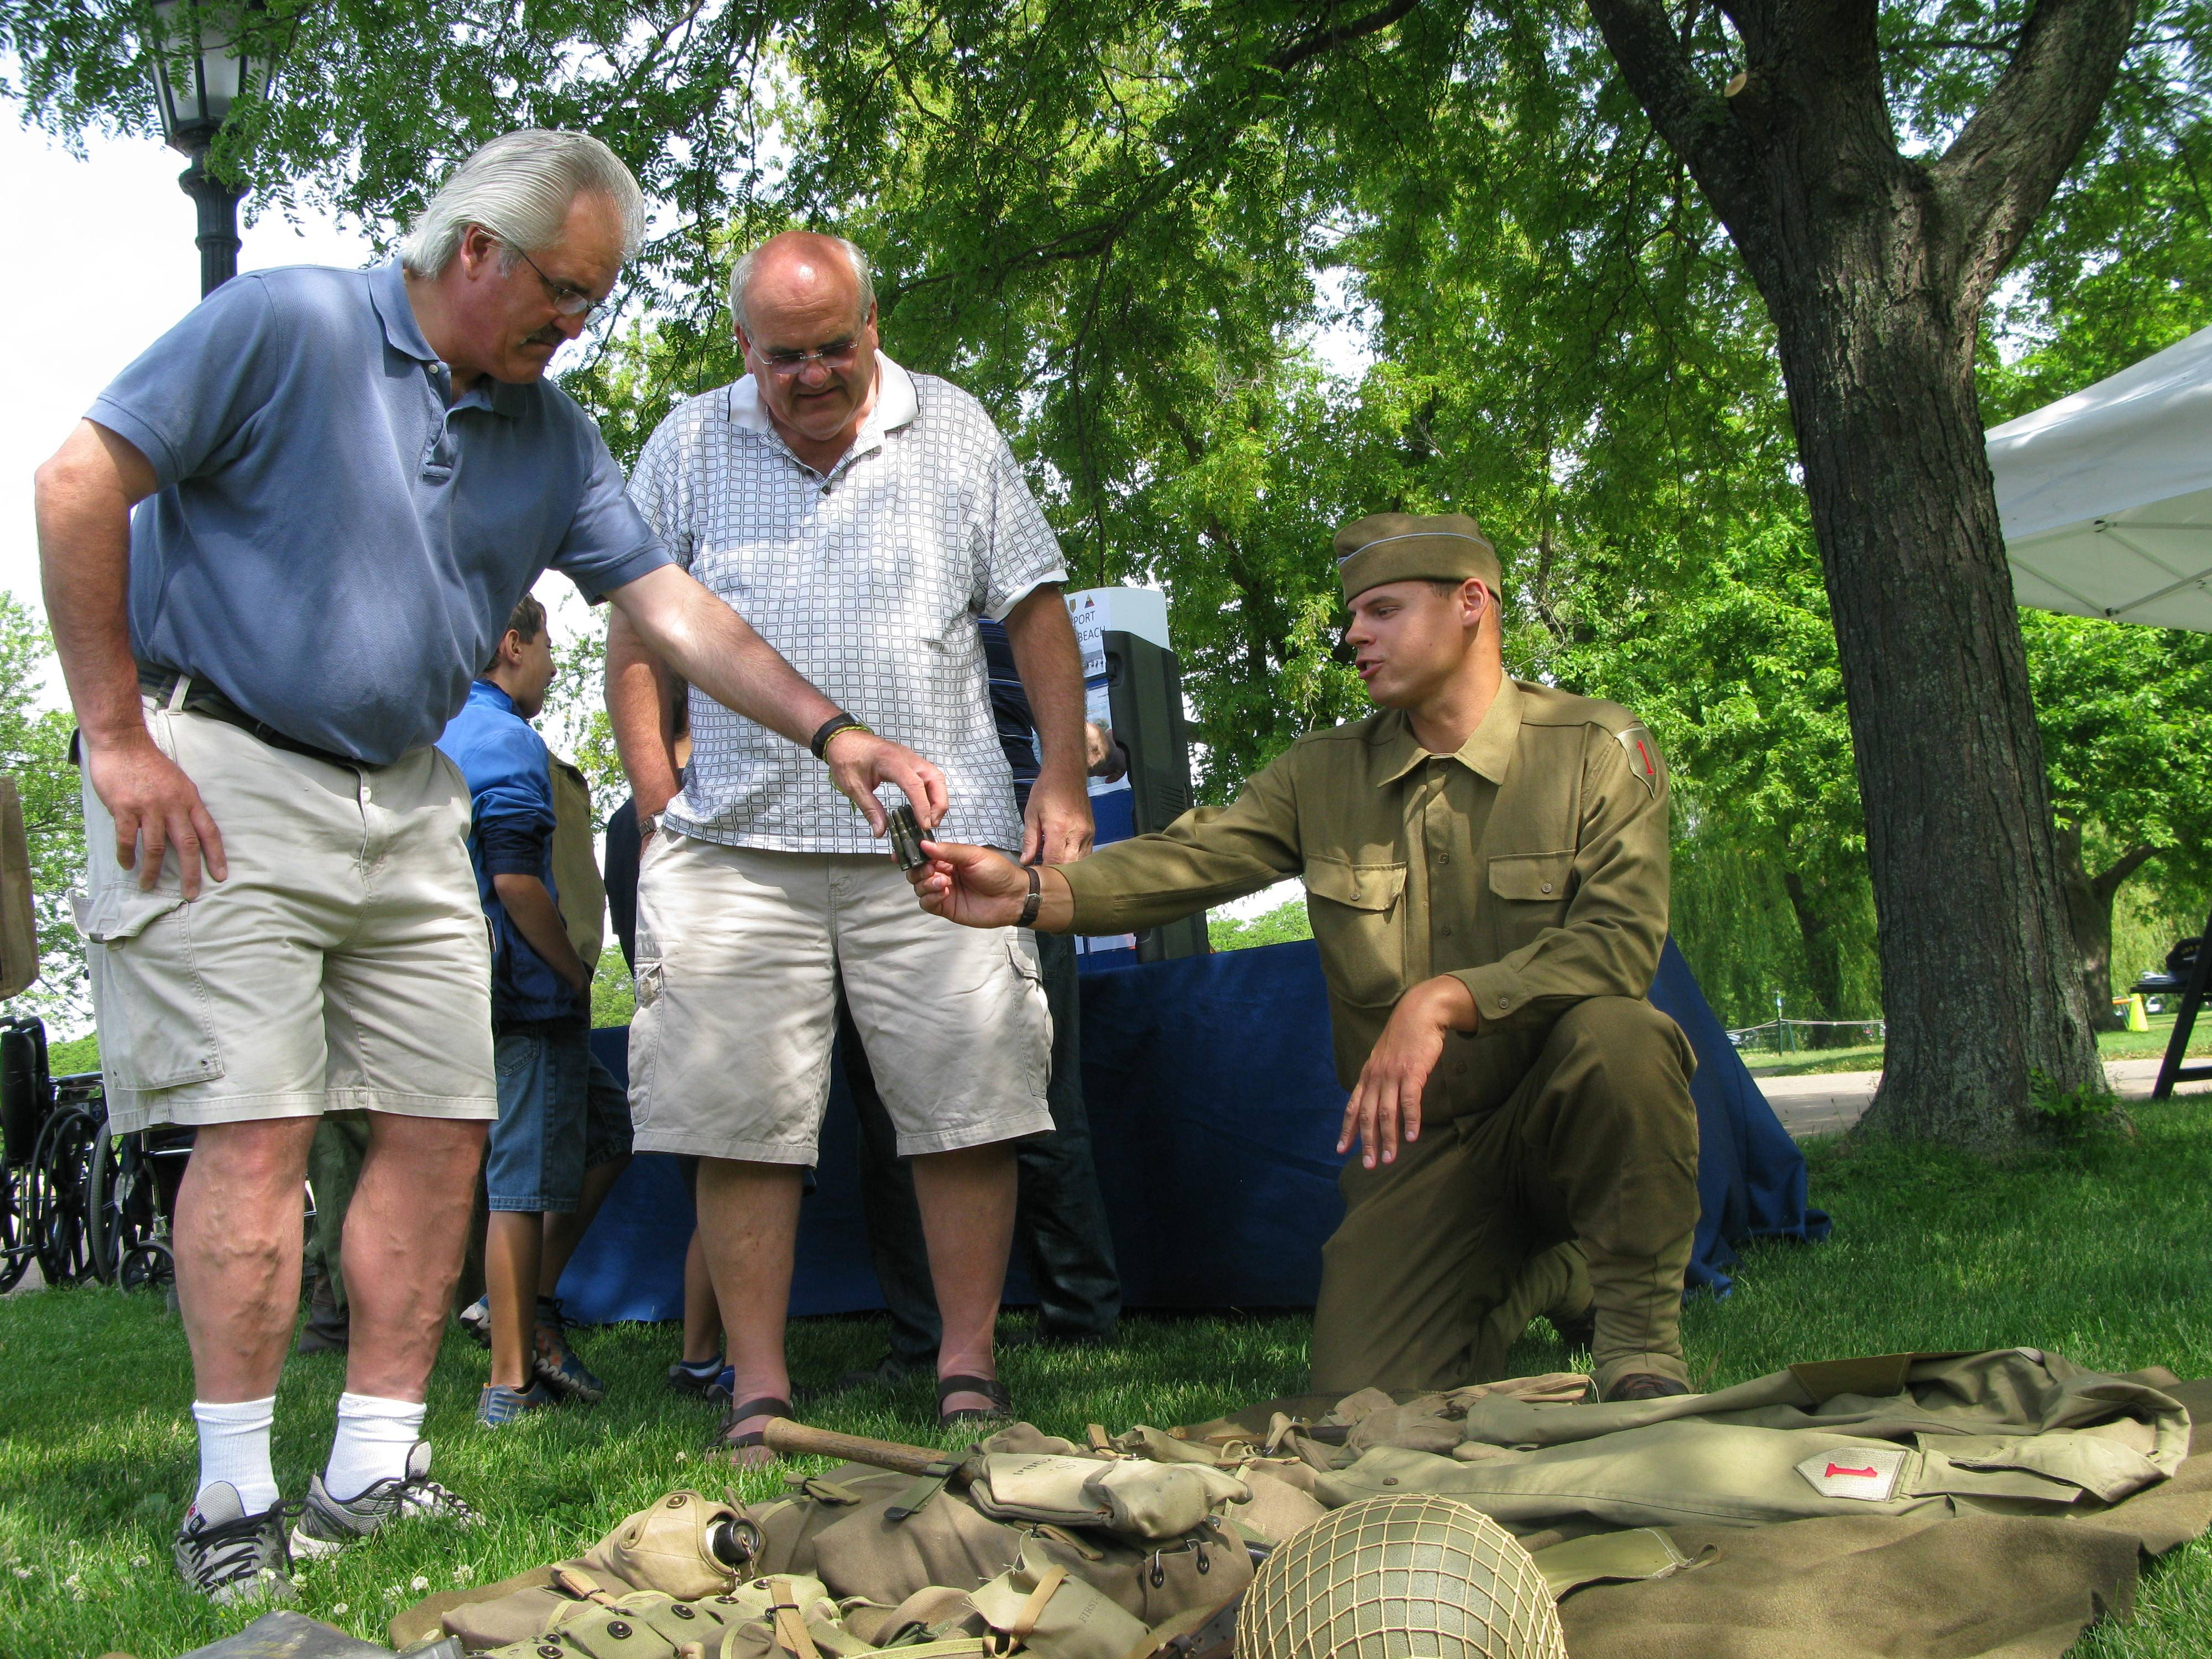 Eric Percy, right, with the Living History Detachment of the First Division Museum at Cantigny Park in Wheaton, explains ammunition carried by World War II D-Day troops to brothers Jim, left, and John Rudins of Lombard during the 70th anniversary commemoration of D-Day Saturday.